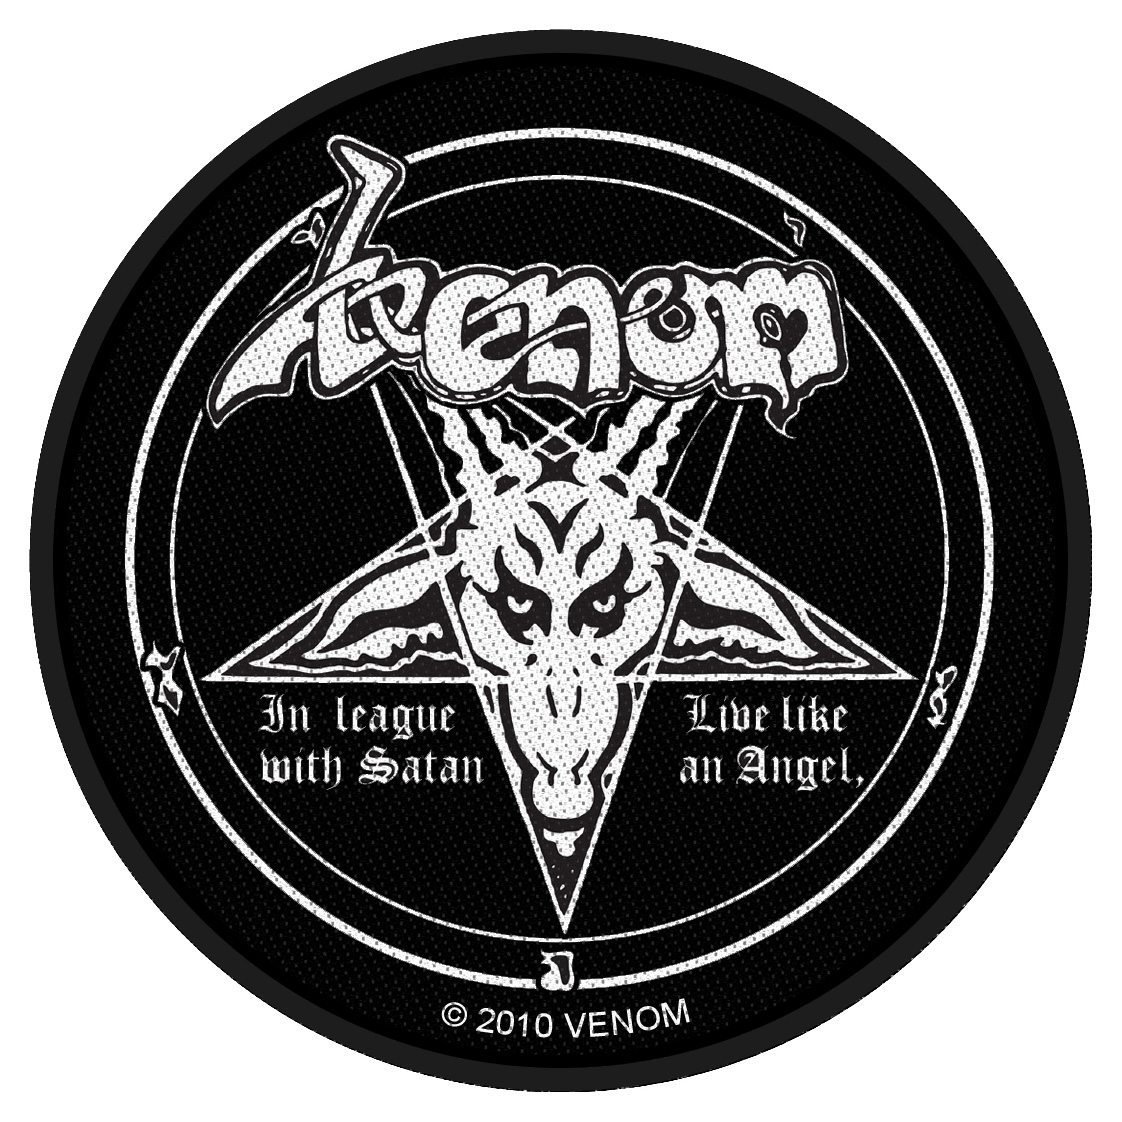 Venom Woven Patch In League With Satan.